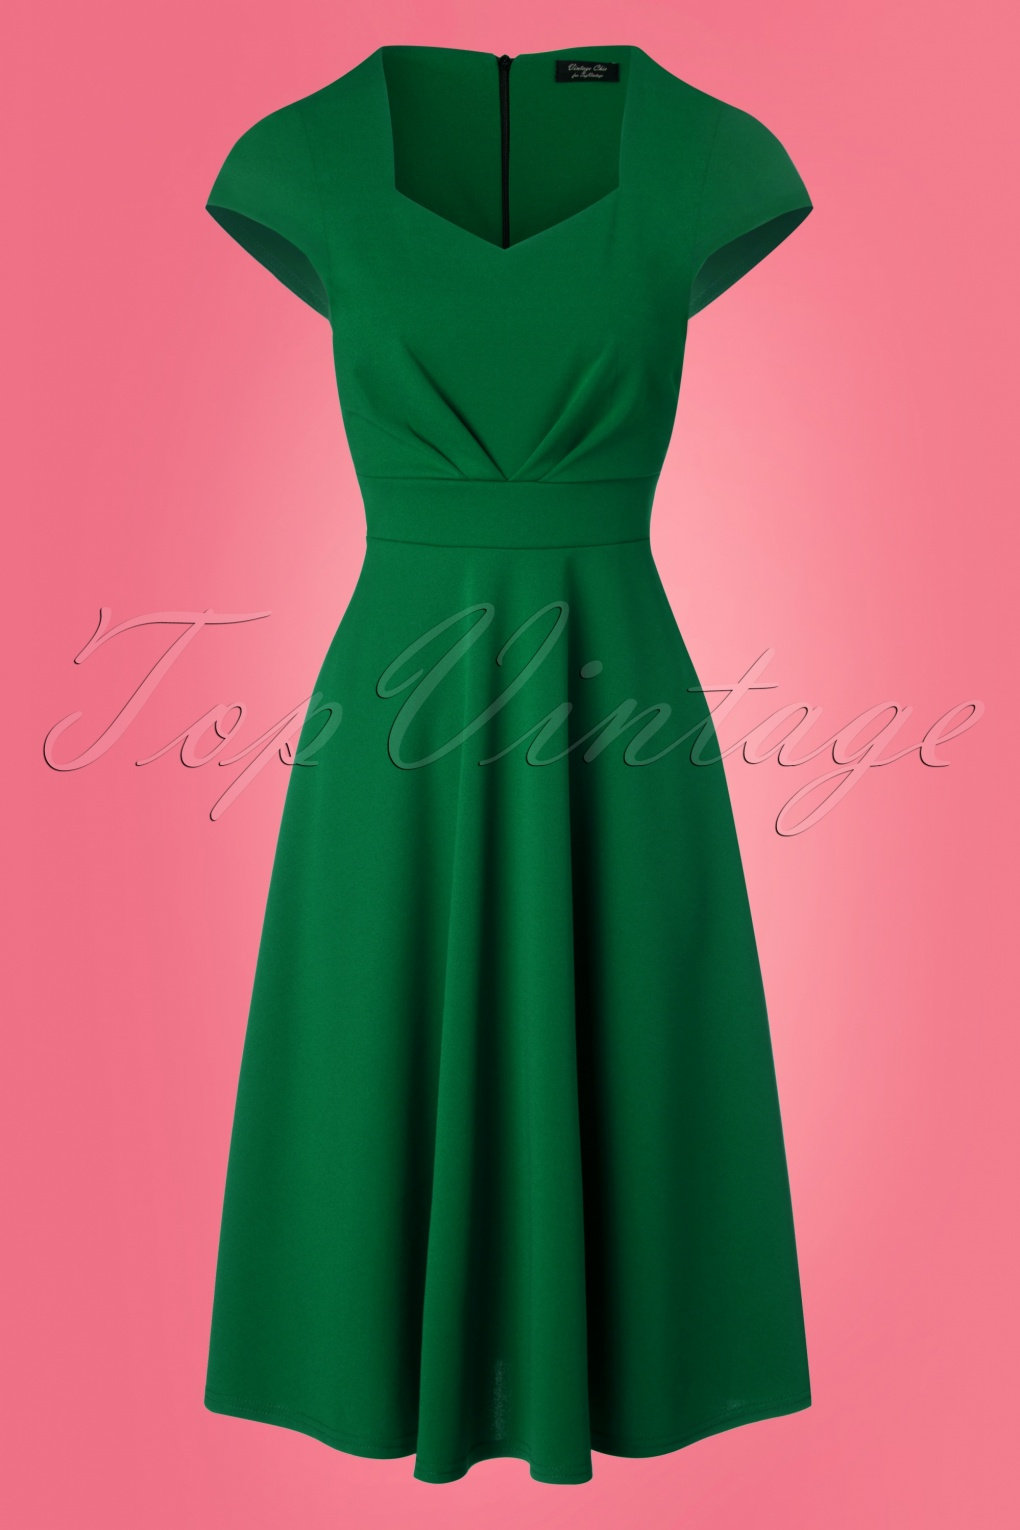 50s ruby short sleeve swing dress in emerald green. Black Bedroom Furniture Sets. Home Design Ideas